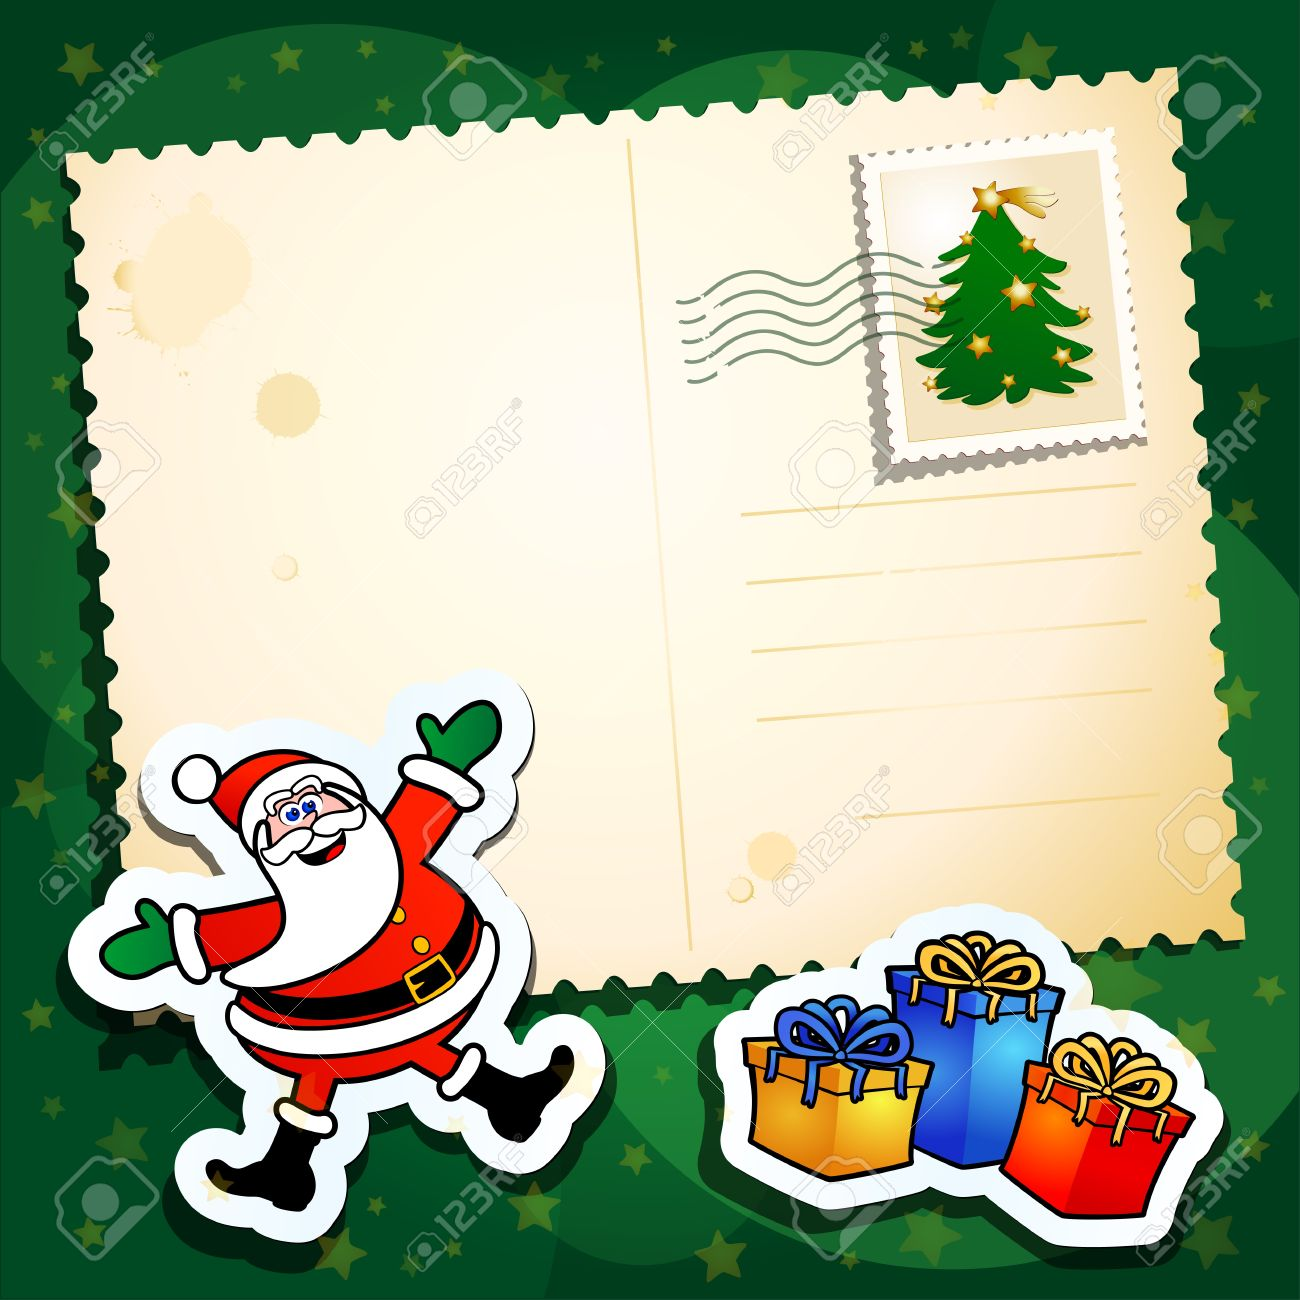 Christmas background with Santa and blank card - 10983704